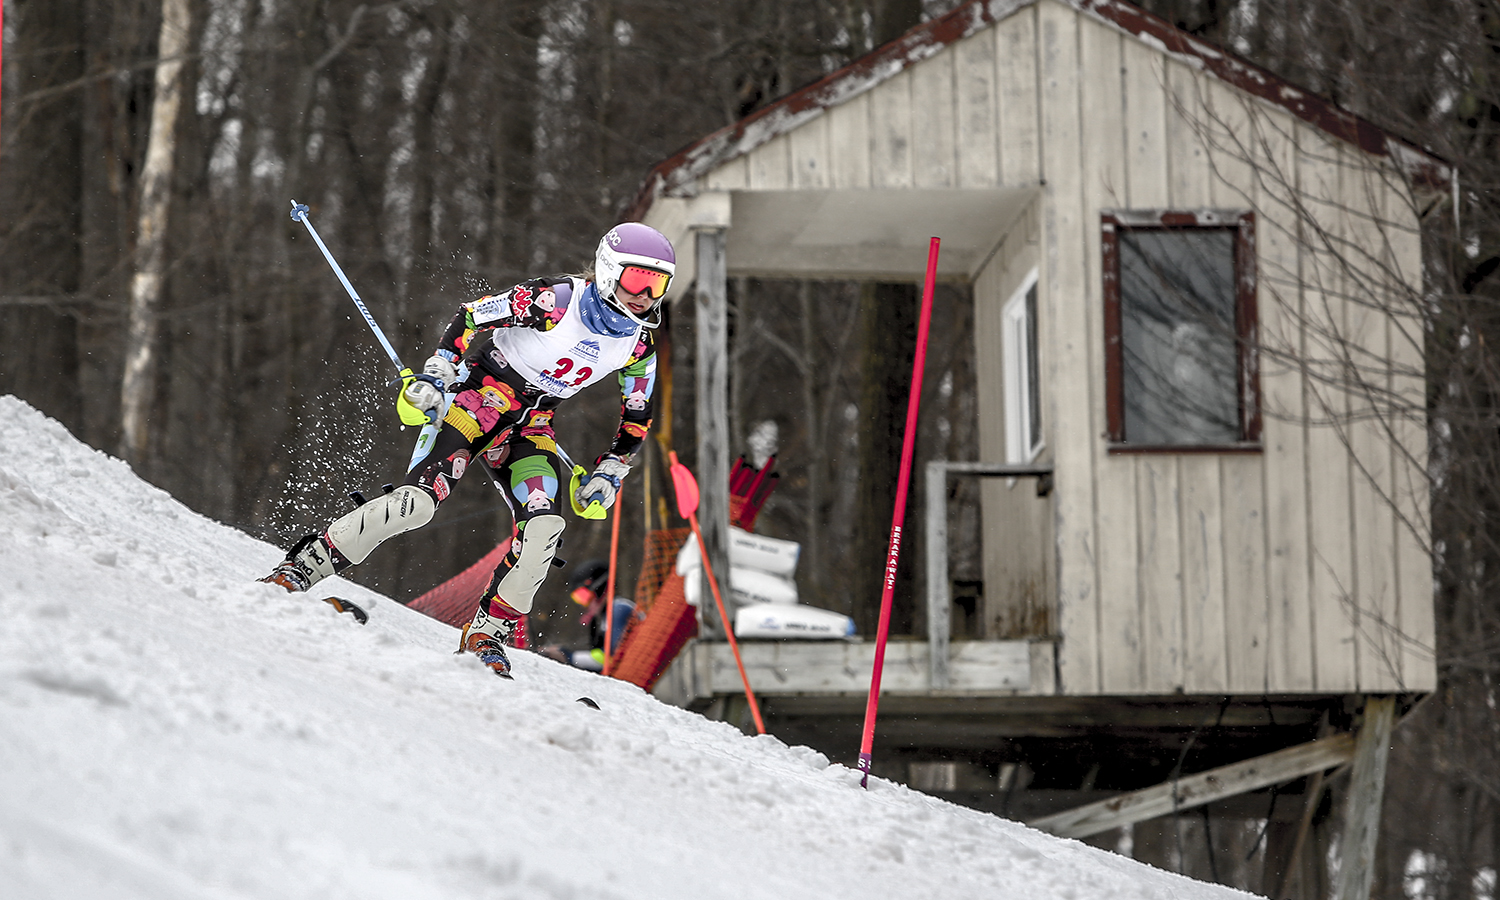 """Conner """"CoCo"""" Clemens '18 races downhill as part of the USCSA Nationals at Greek Peak Mountain Resort in Cortland, N.Y."""